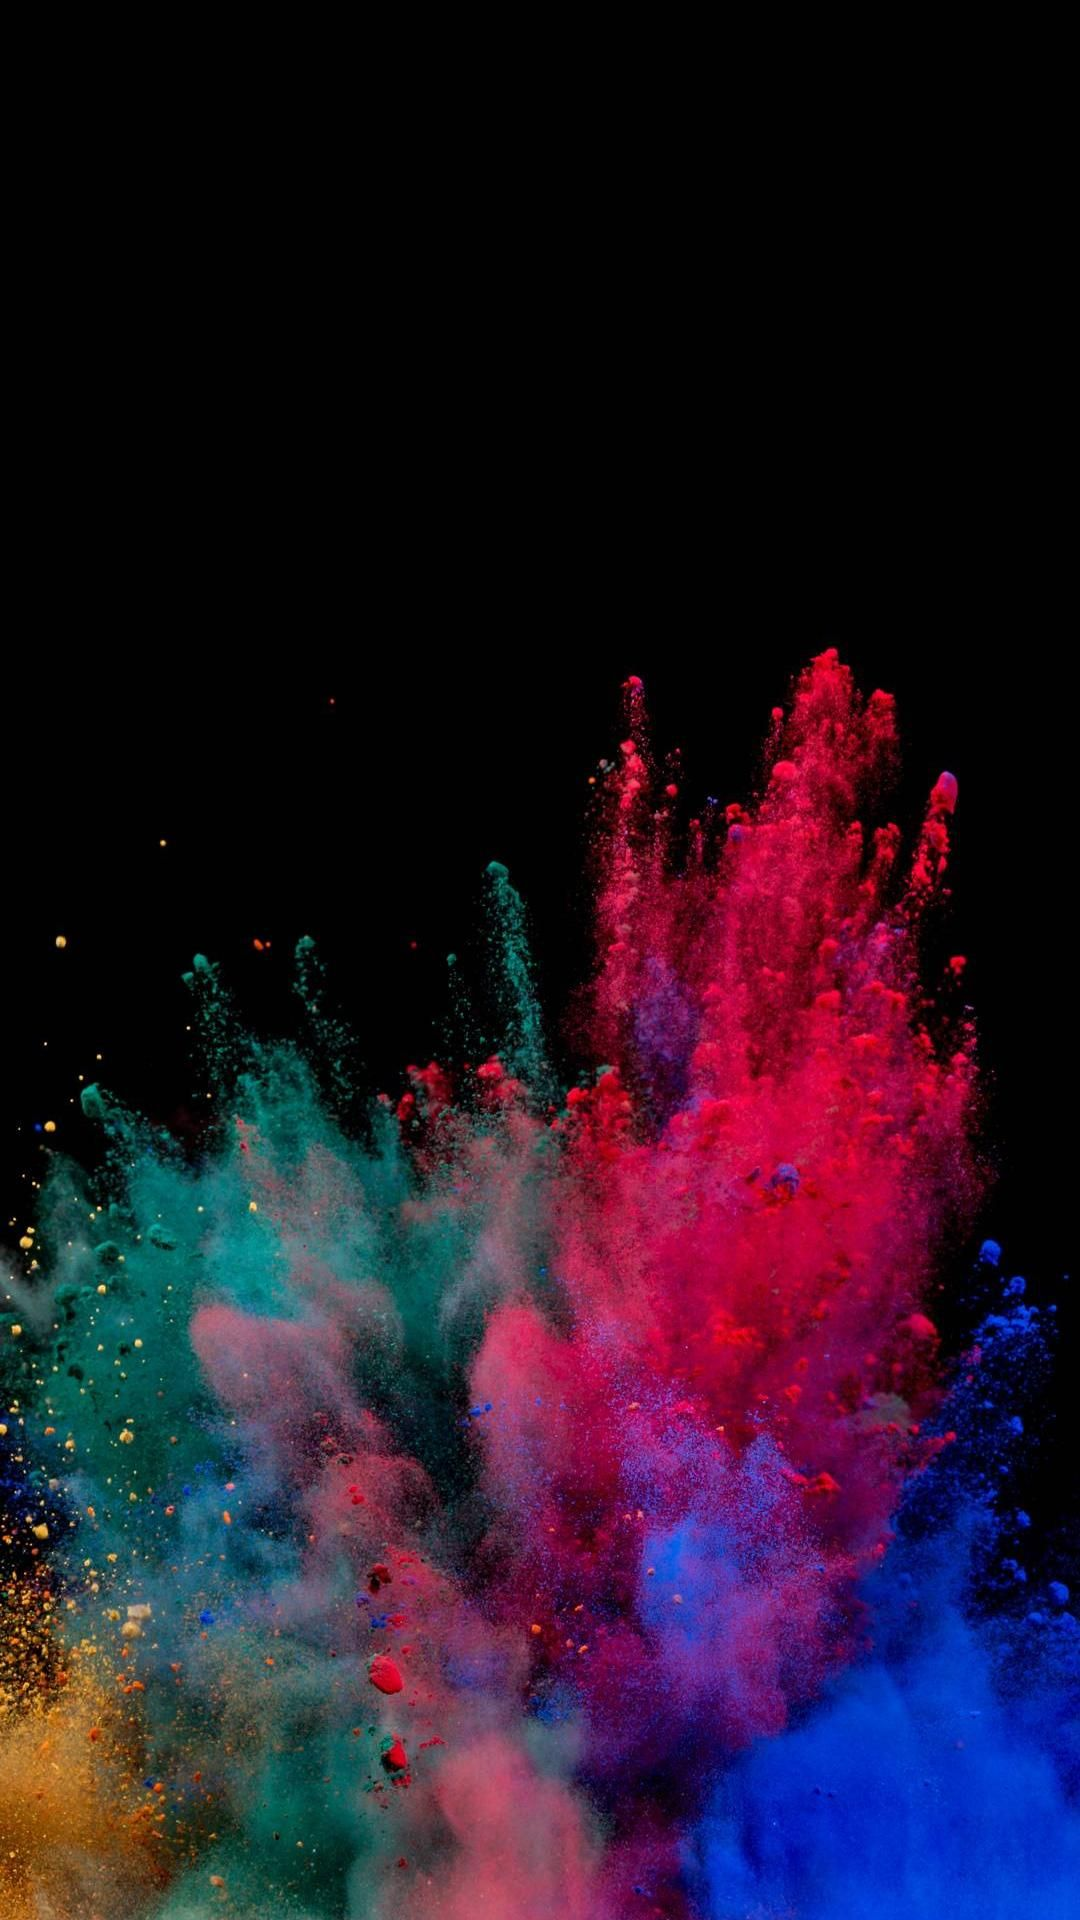 Apple Iphone 11 Pro Wallpapers Colourful Wallpaper Iphone Smoke Wallpaper Crazy Wallpaper